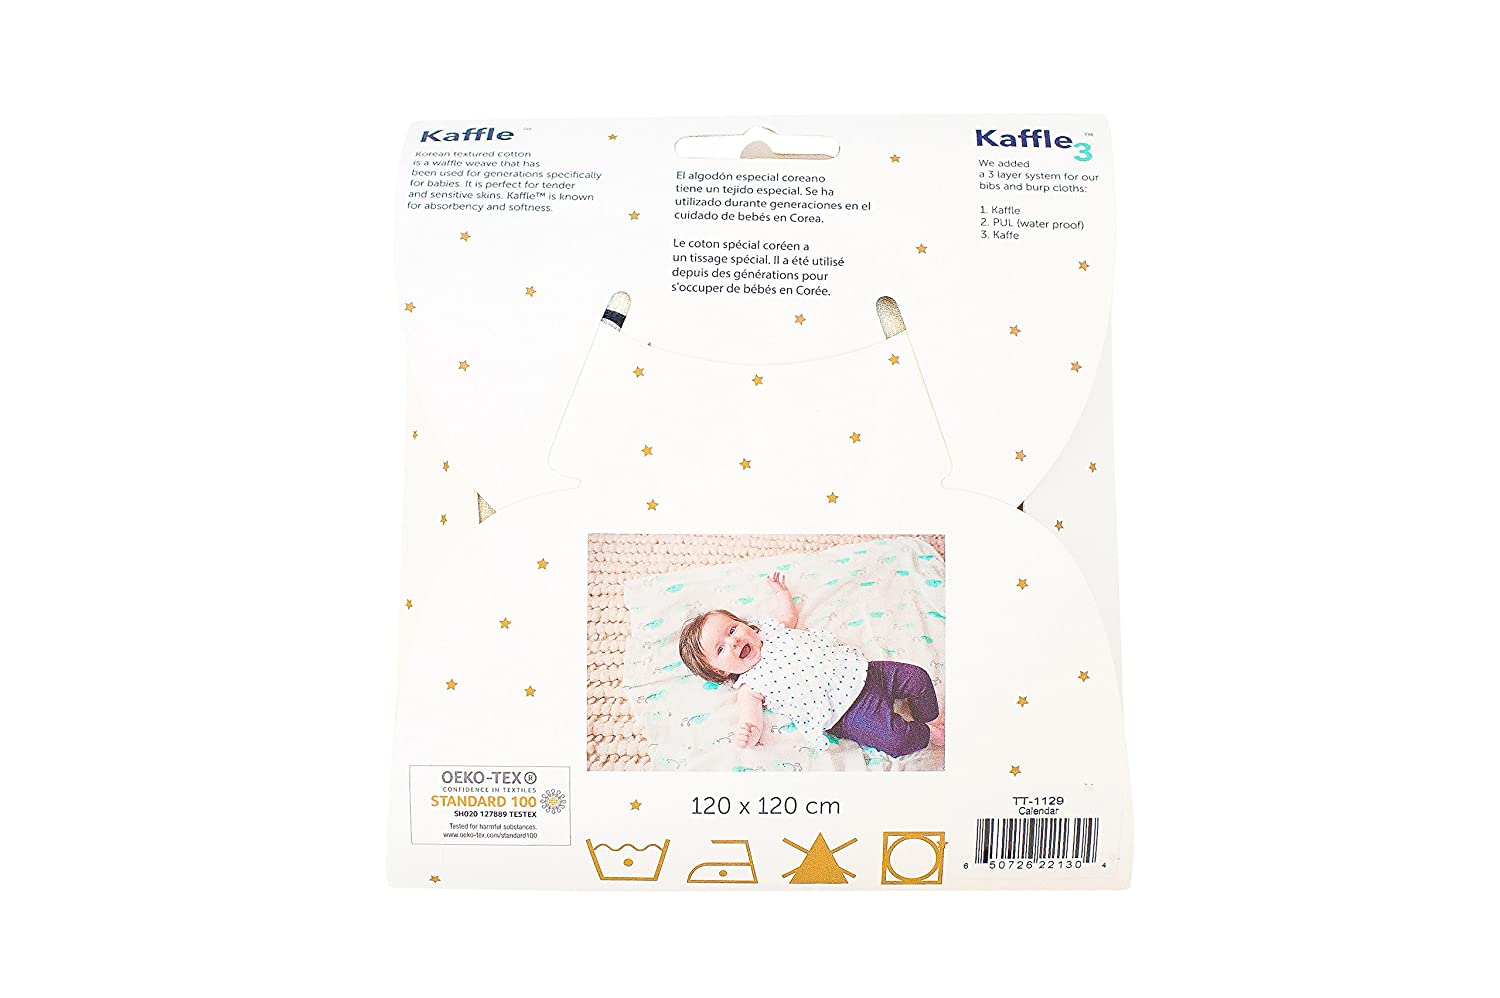 Amazon.com: Warm, Soft, Comfortable Swaddle Baby Blanket for Sensitive Skin (Calendar 2018): Baby